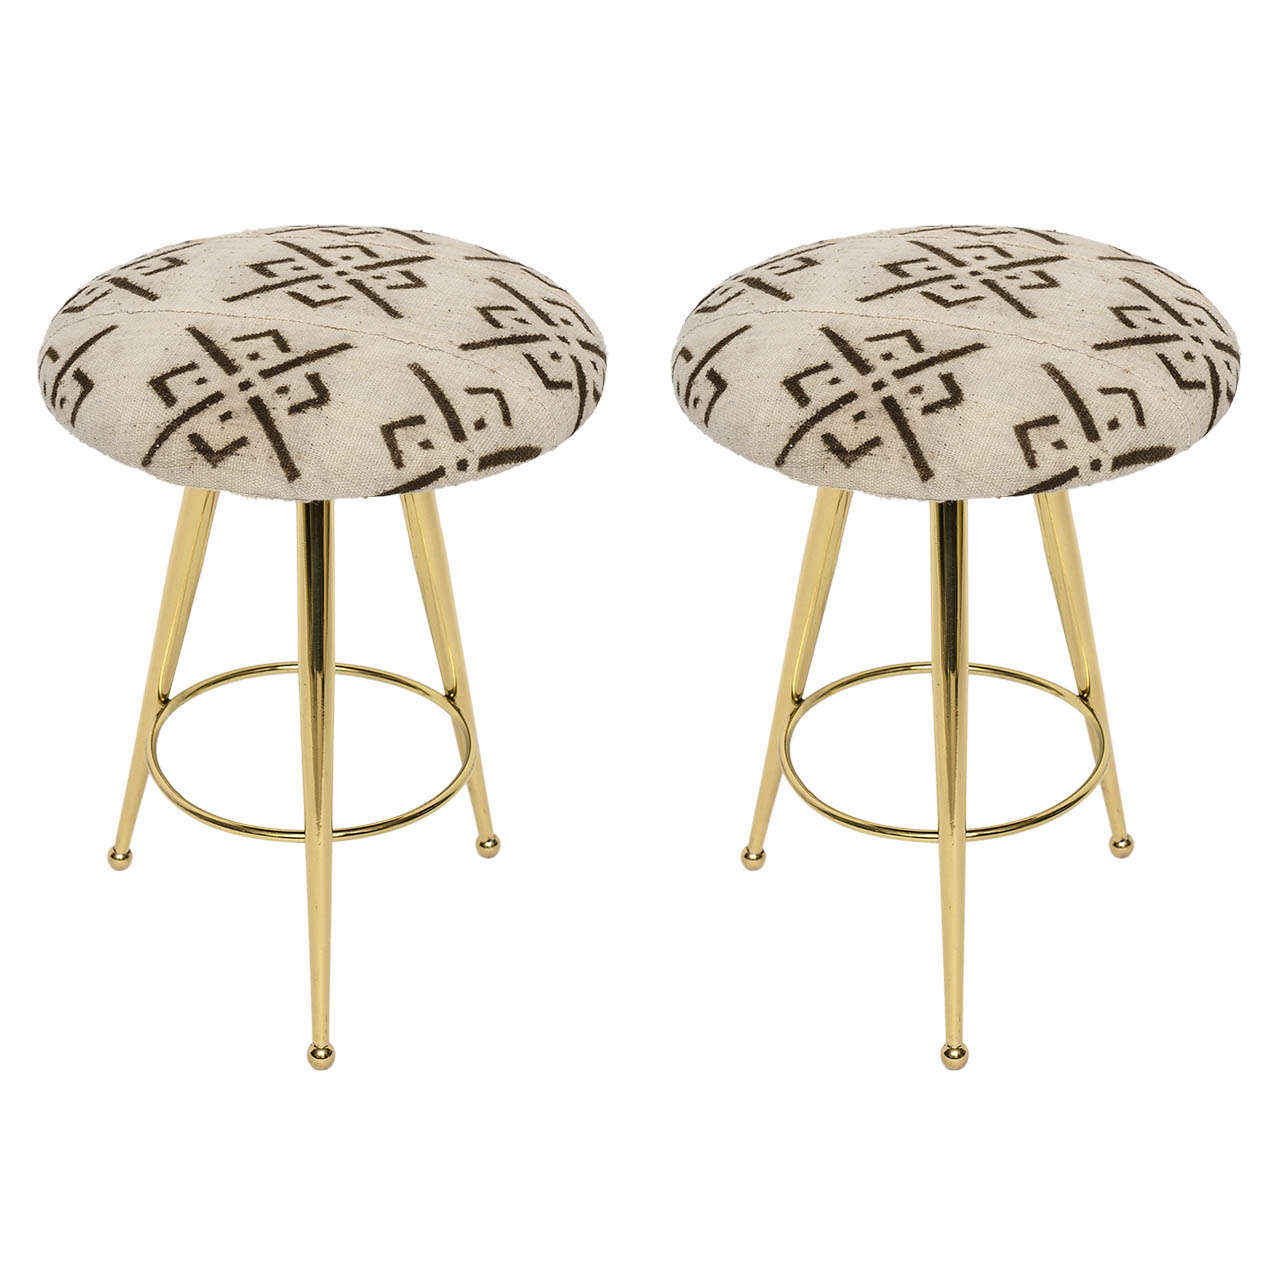 Pair of 50's Italian Brass Stools with Vintage Mud Cloth Upholstery For Sale